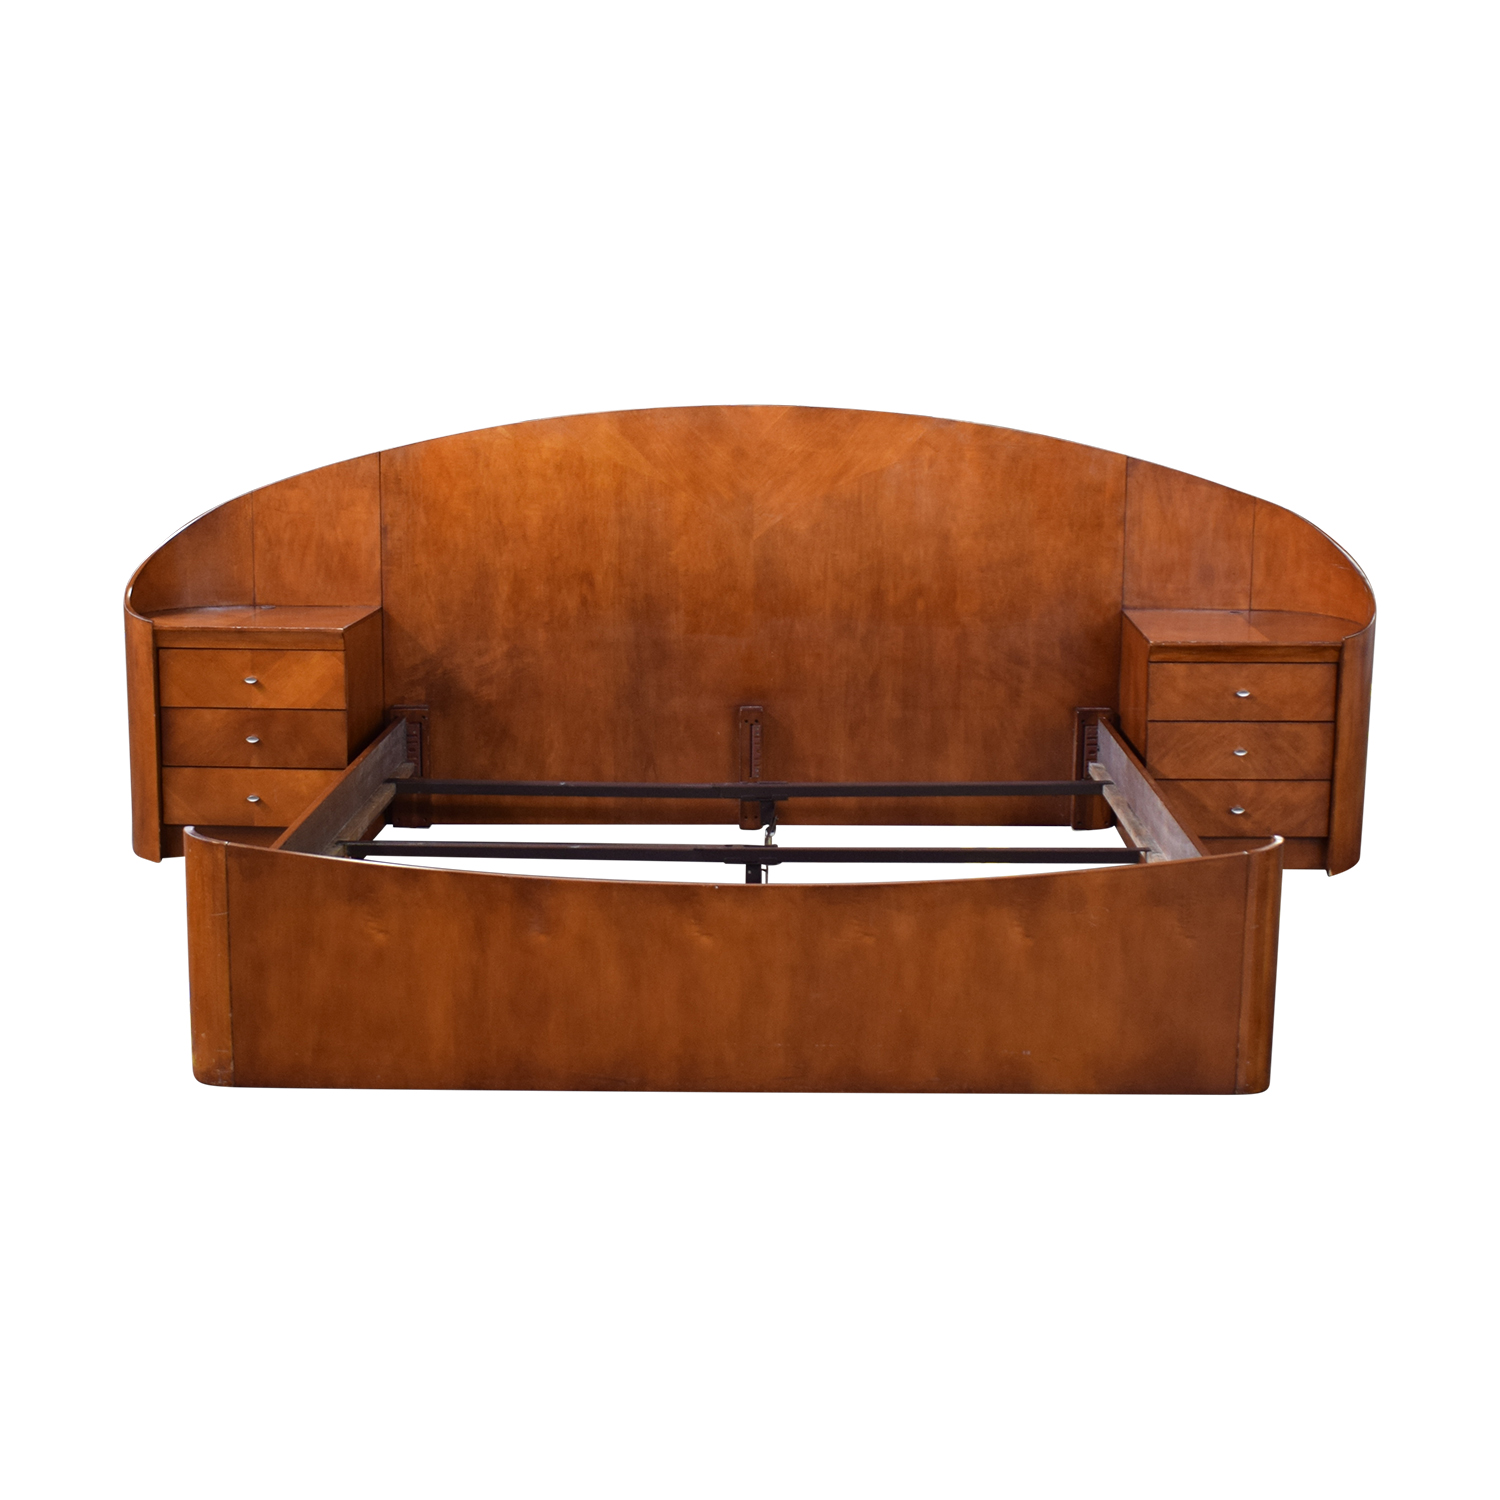 Raymour & Flanigan Raymour & Flanigan Teakwood King Bed dimensions